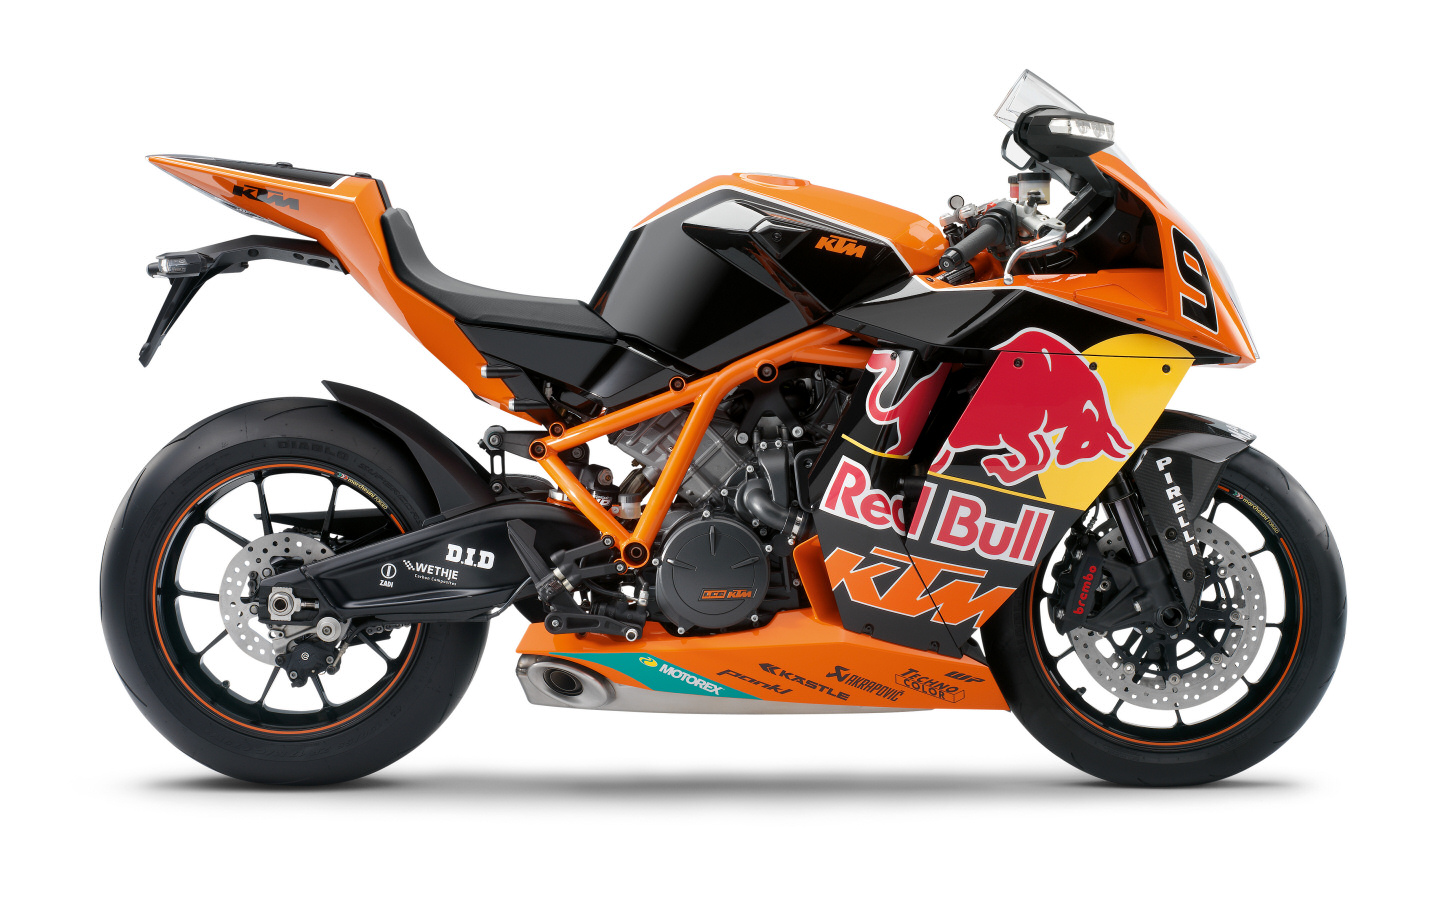 1190 rc8 r red bull replica ktm galeries photos motoplanete. Black Bedroom Furniture Sets. Home Design Ideas